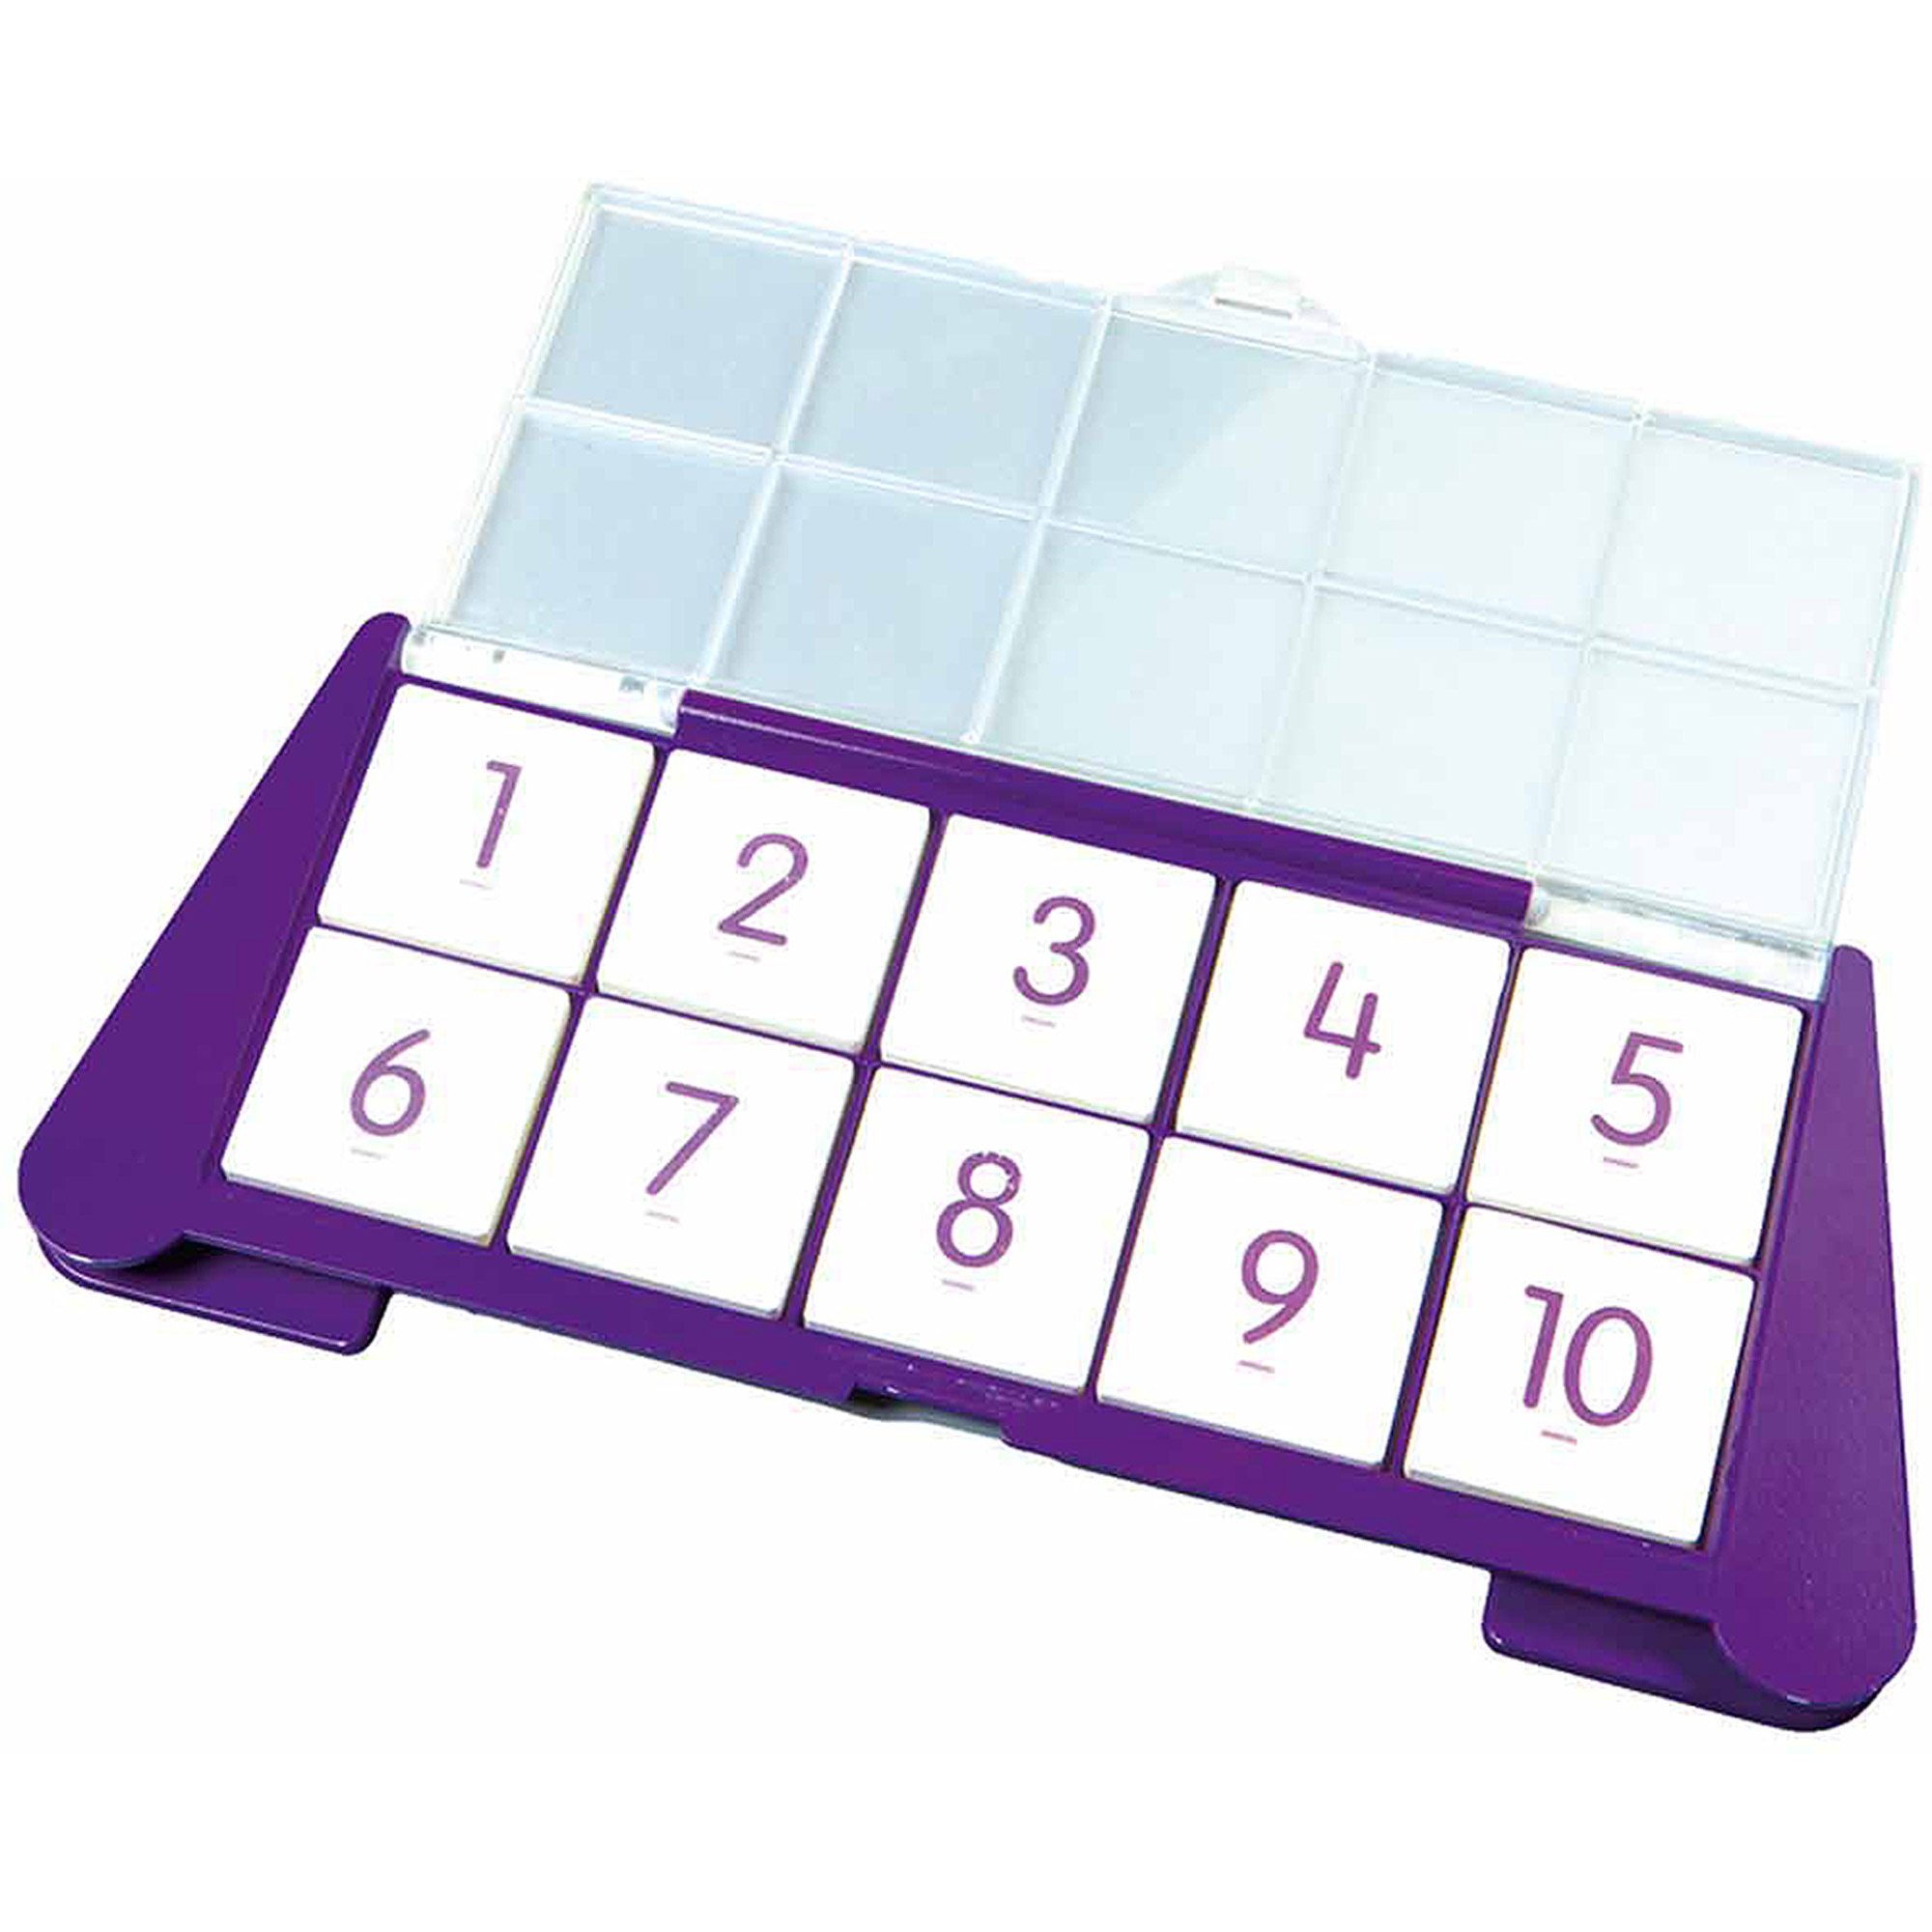 Junior Learning Smart Tray Self Correcting Learning Tool